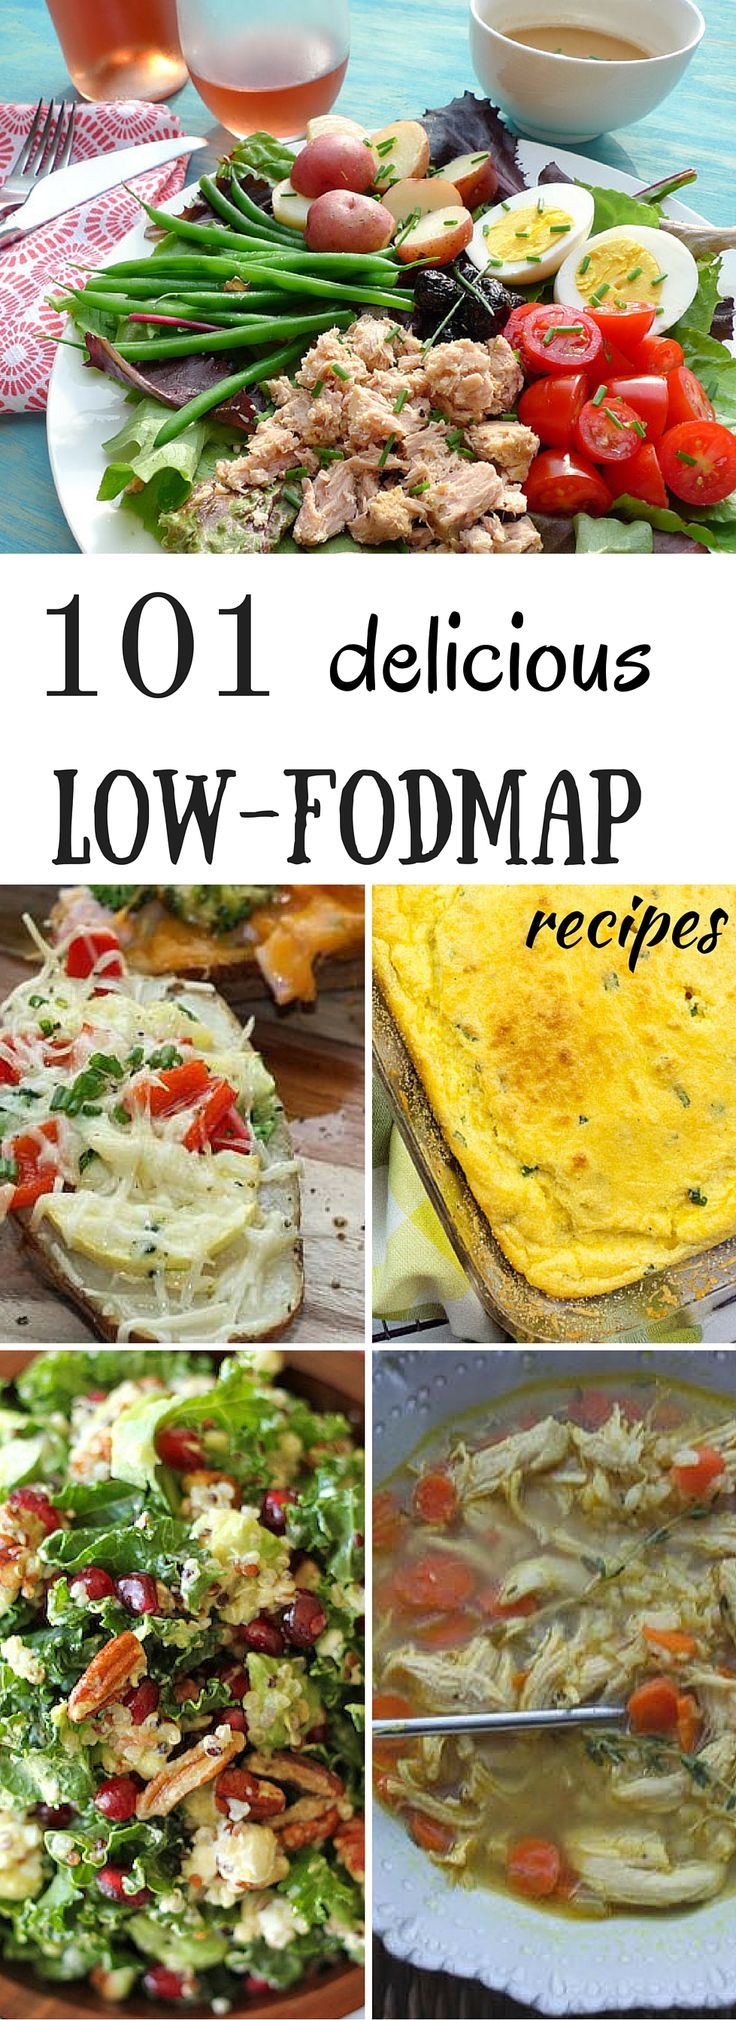 A list of 101 delicious low FODMAP recipes with photos and instructions. All the recipes are easy, and are made with healthy ingredients. | dietingwell.com